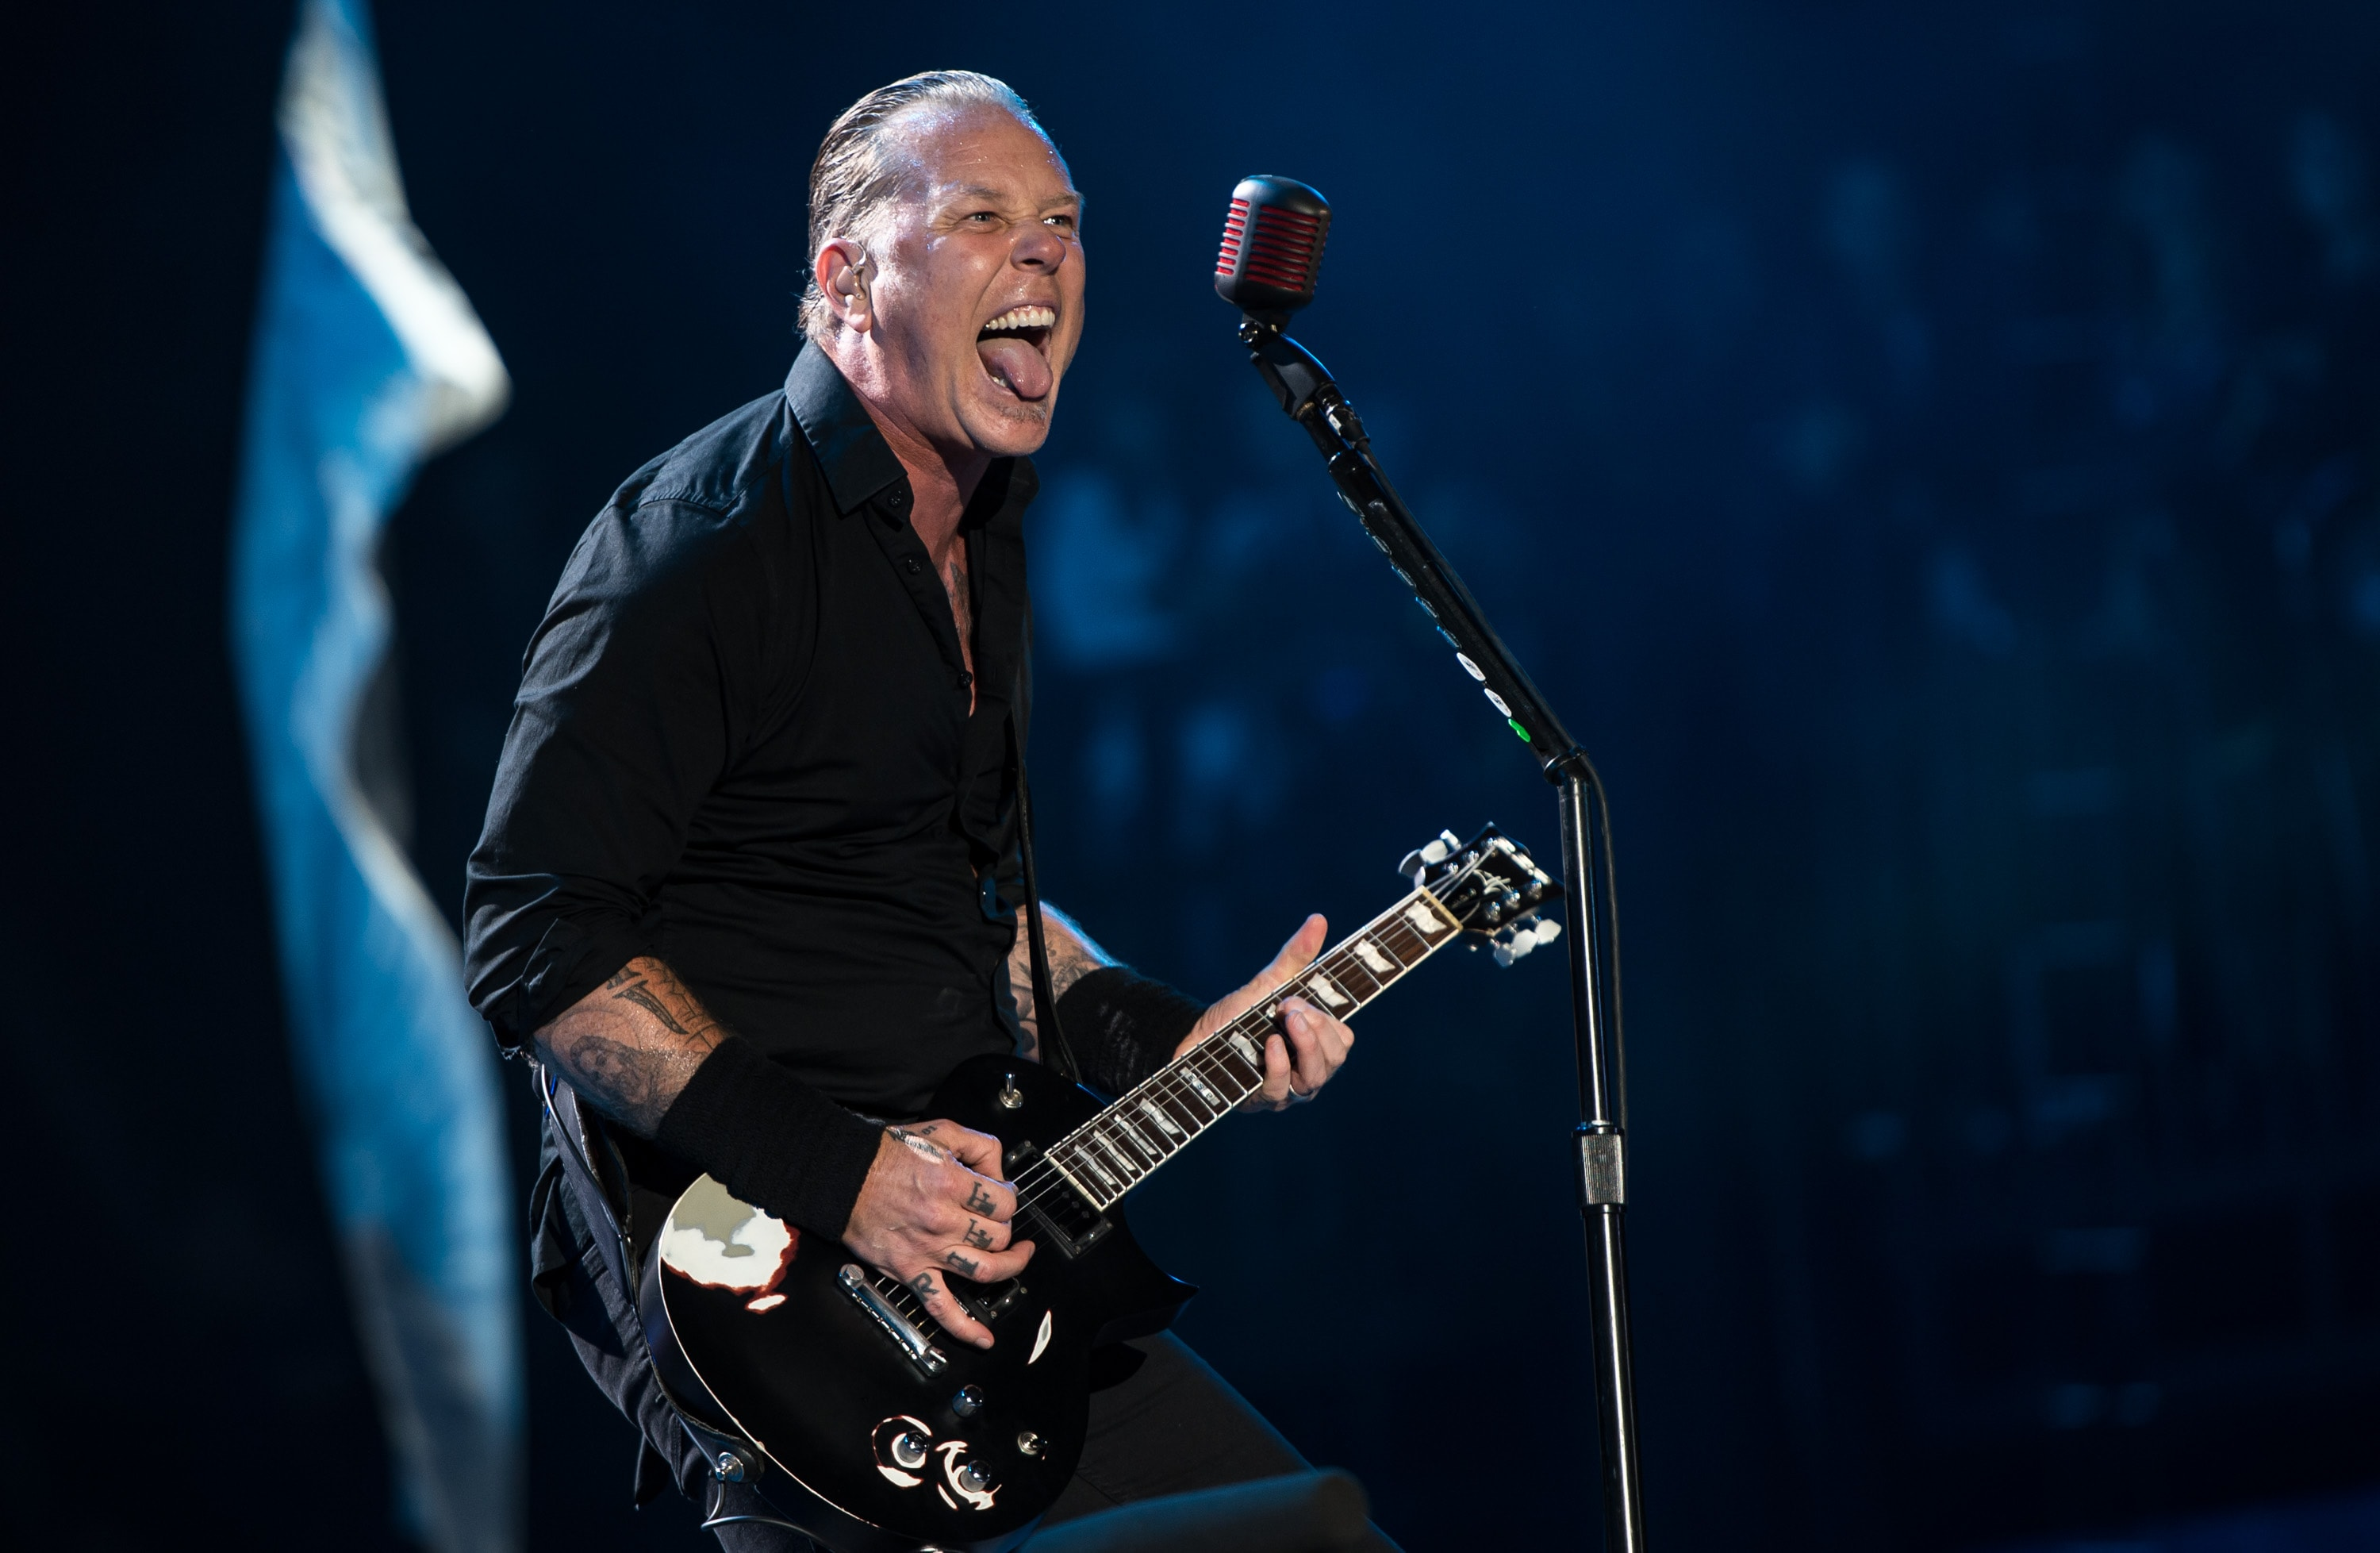 GLASTONBURY, ENGLAND - JUNE 28: James Hetfield of Metallica performs on the Pyramid stage during Day 2 of the Glastonbury Festival at Worthy Farm on June 28, 2014 in Glastonbury, England.